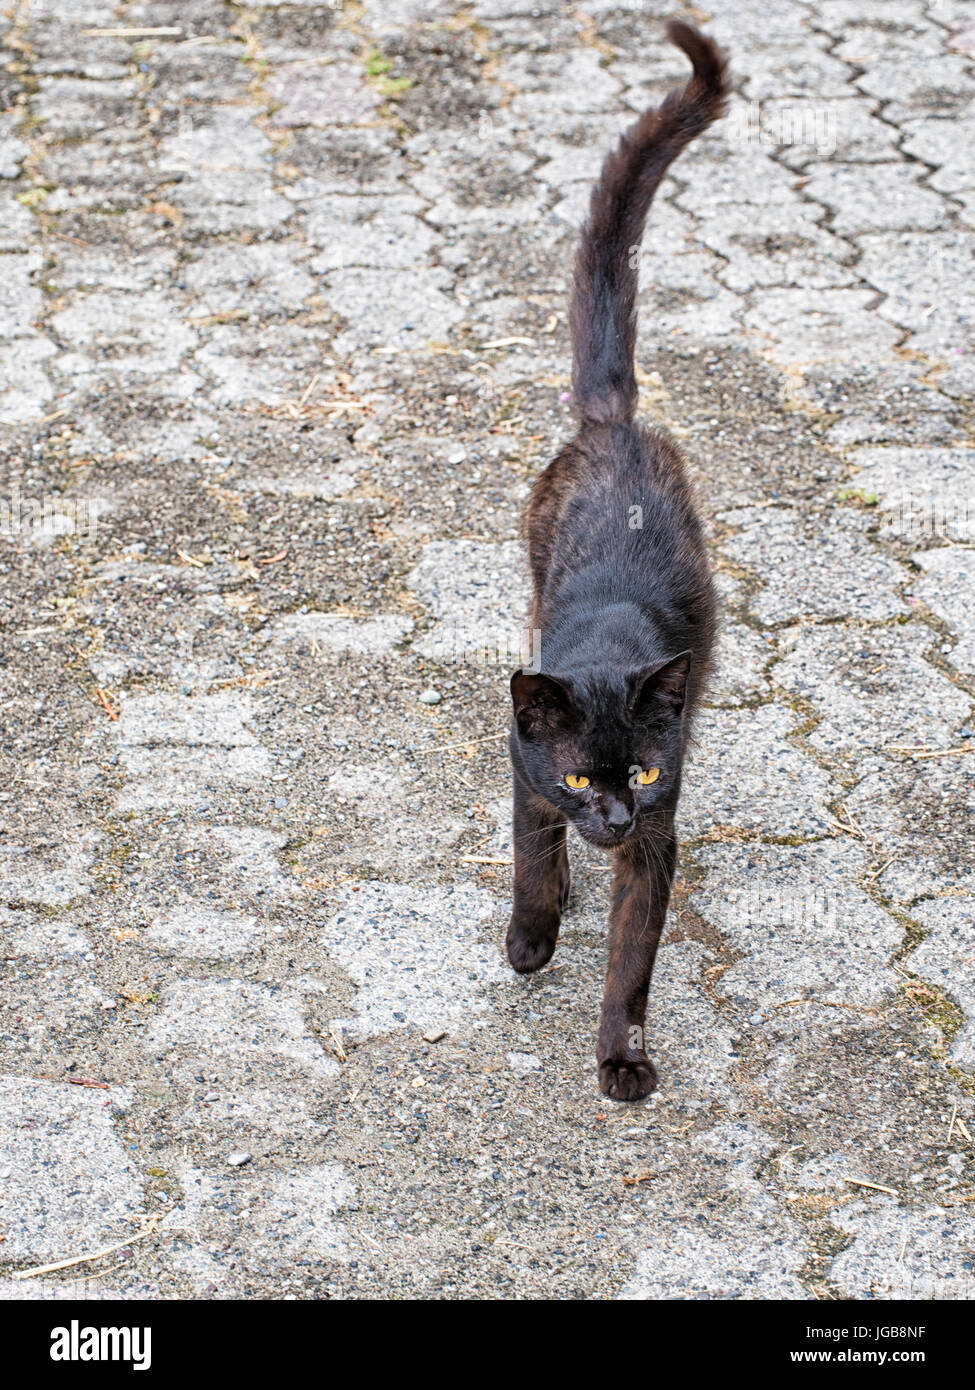 Cat. Advancing towards camera. Stock Photo